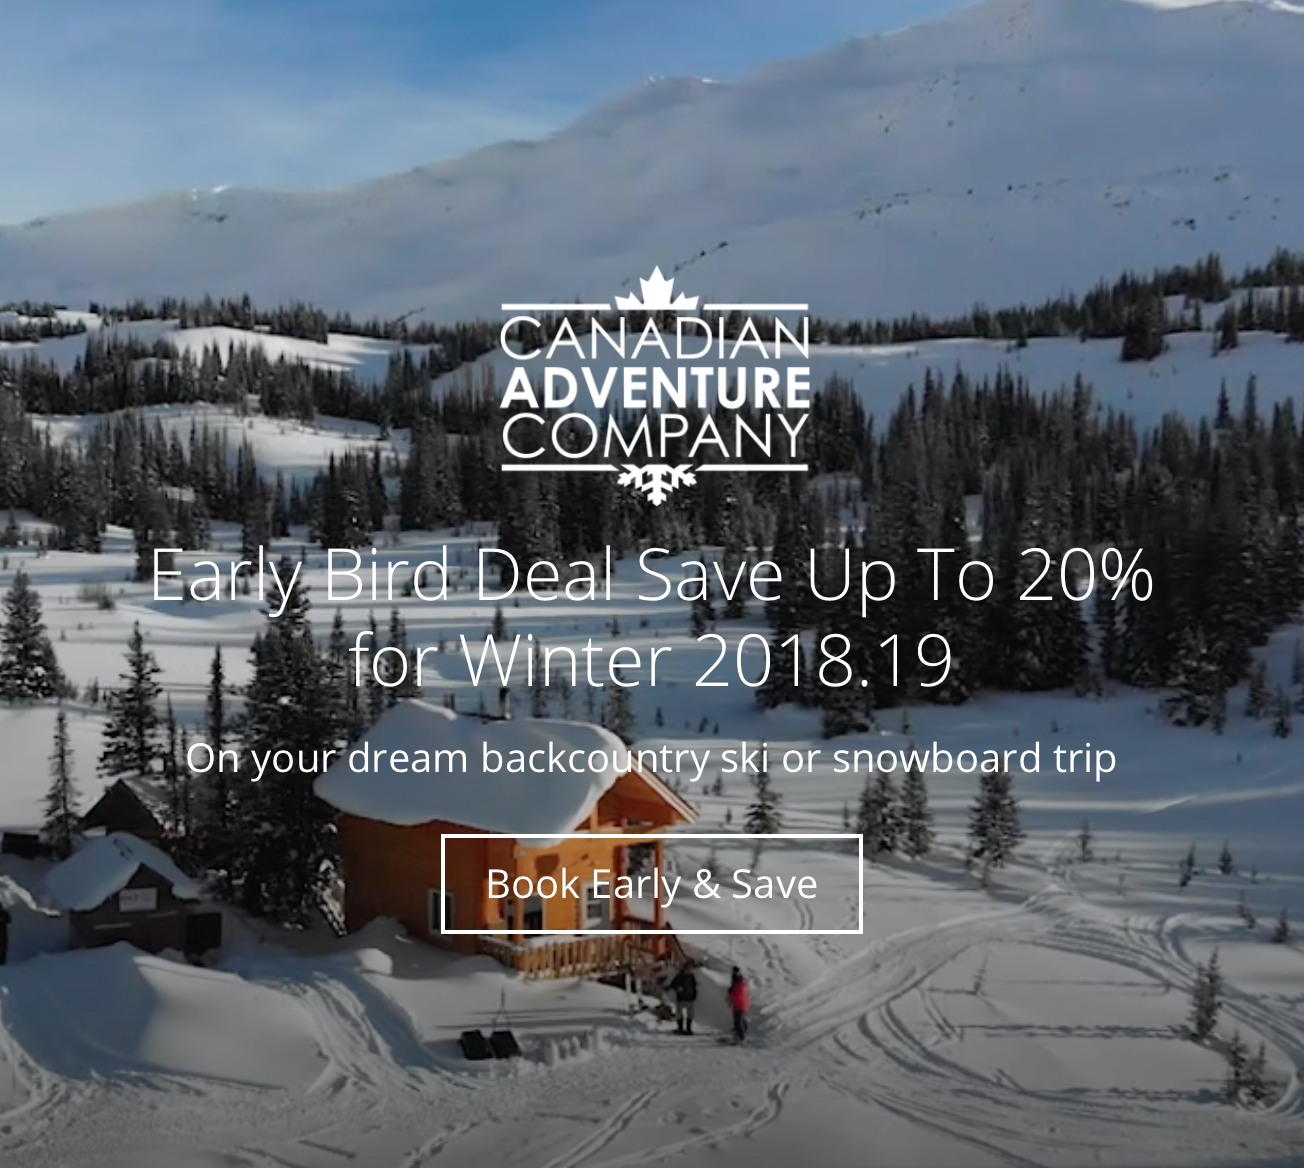 Canadian Adventure Company: Early Bird Deal Save Up To 20% for Winter 2018/19